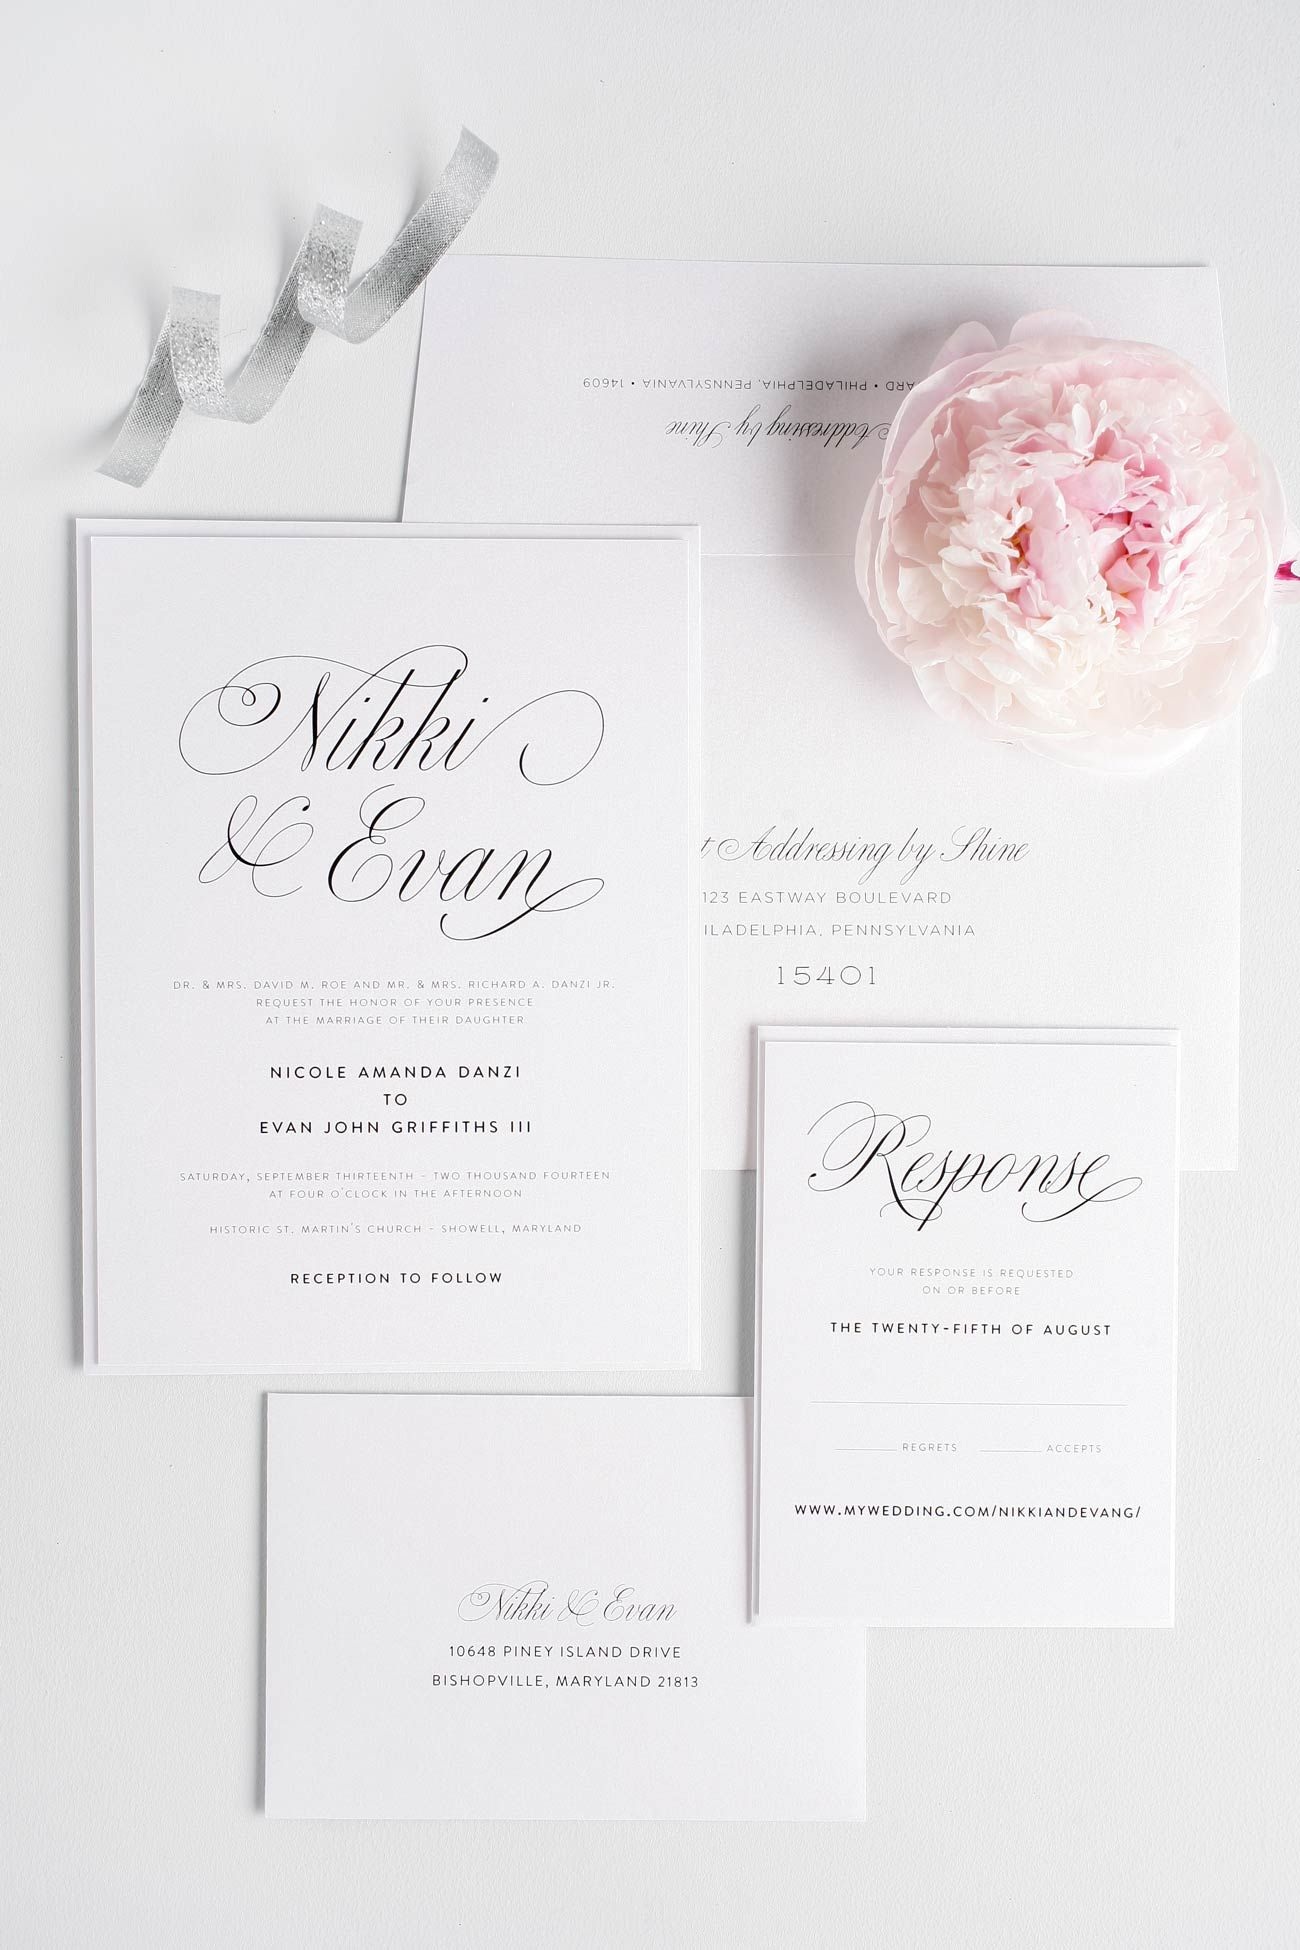 calligraphy script elegant wedding invitations in charcoal gray and blossom pink with a horizontal - Wedding Invitations Elegant